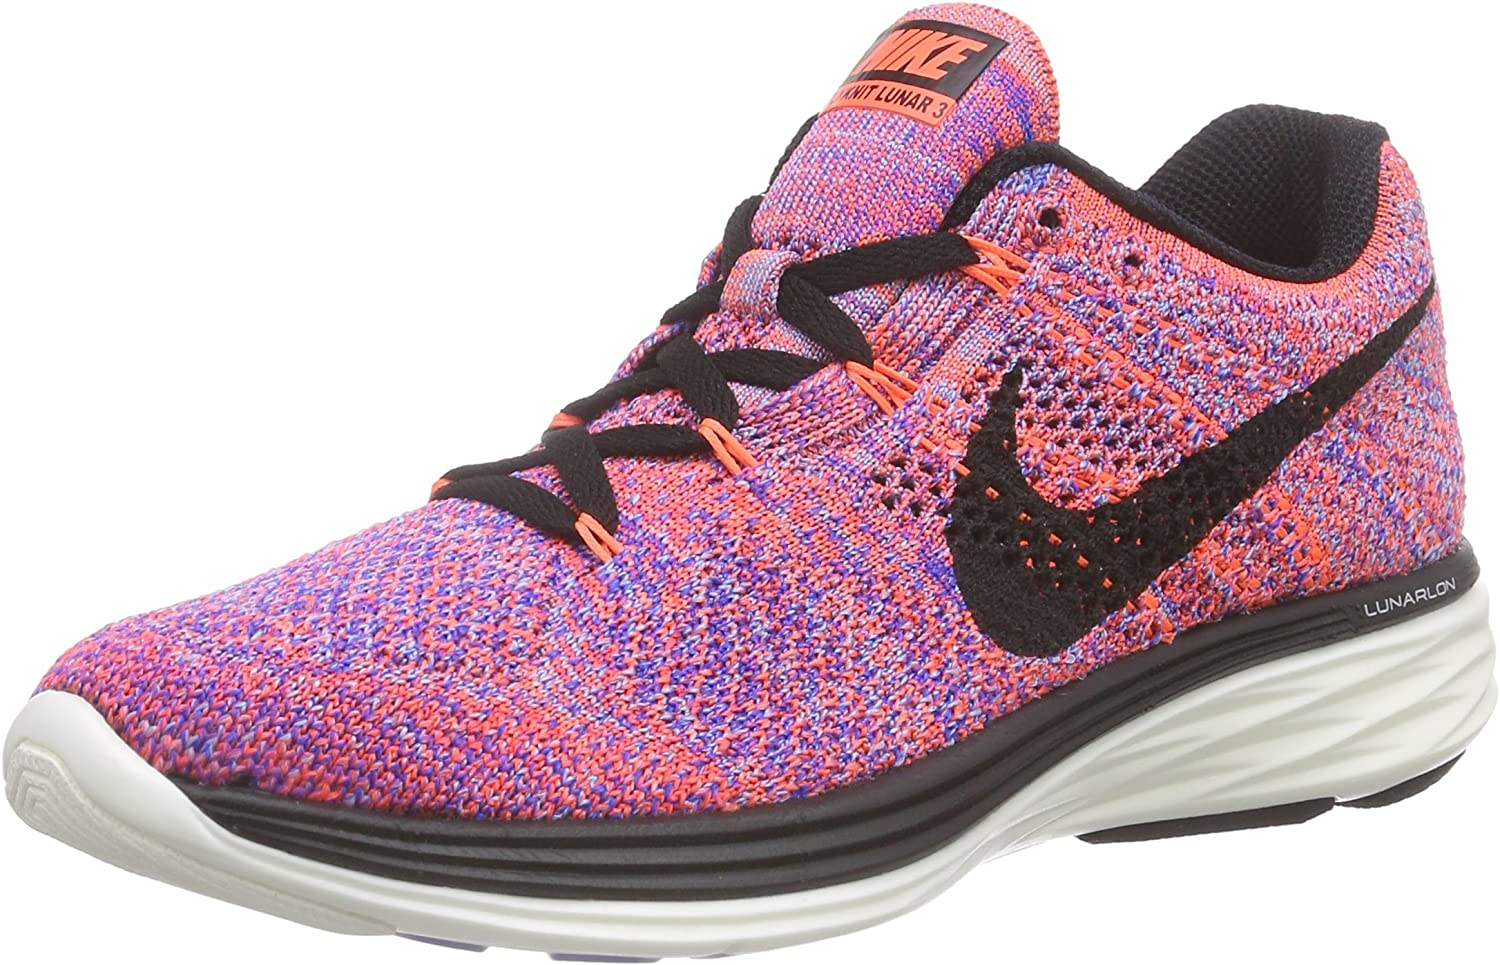 Amazon Com Nike Flyknit Lunar 3 Women S Running Shoes Size Us 6 5 Regular Width Color Pink Gray Road Running